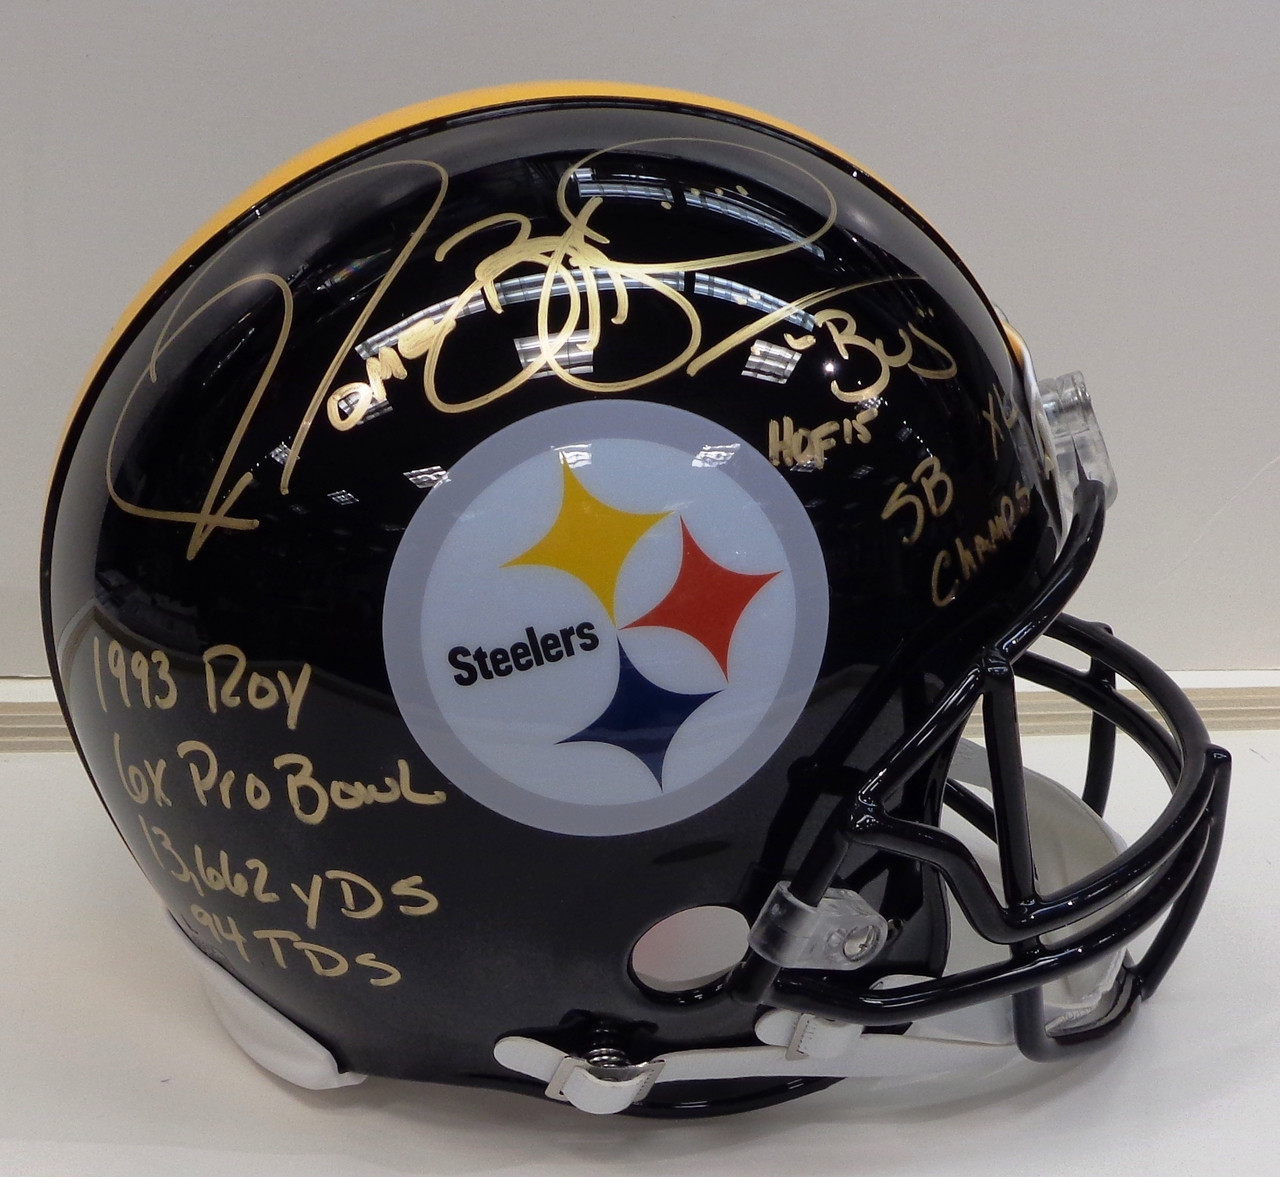 acffb188 Jerome Bettis Autographed Riddell Authentic Full Size Pittsburgh Steelers  Helmet with 7 Inscriptions